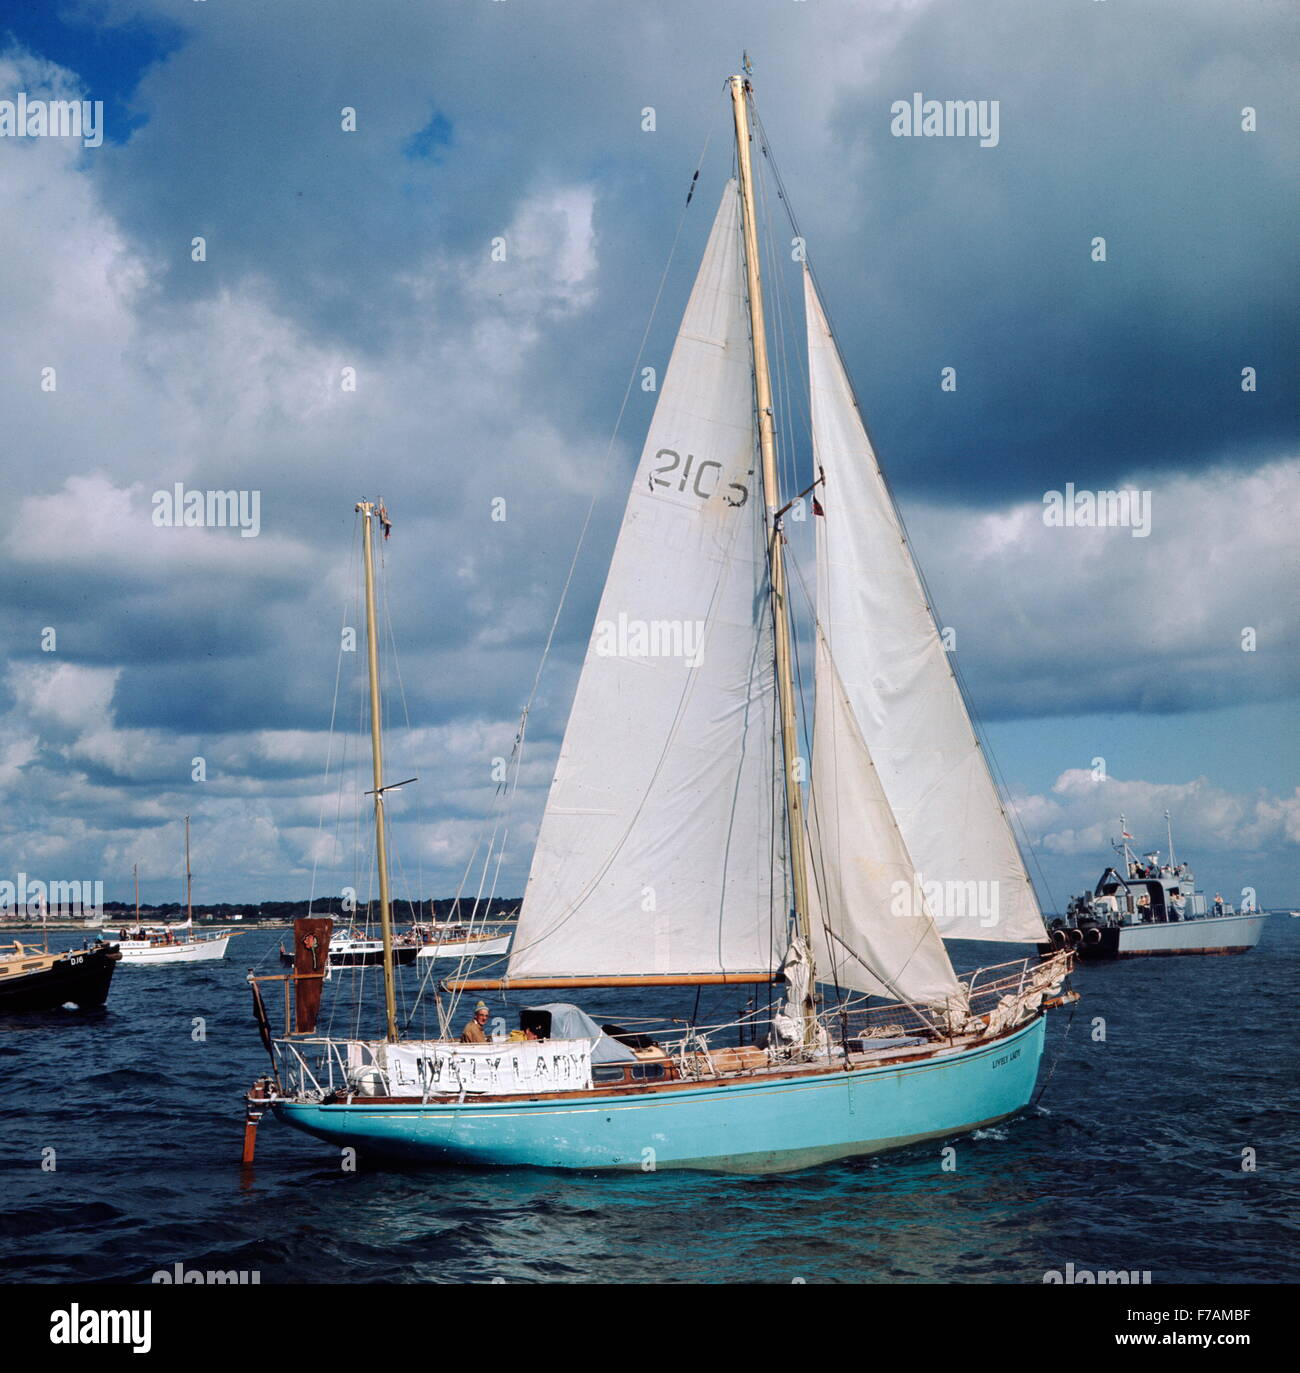 AJAXNETPHOTO. 4 JULY, 1968. SOUTHSEA, ENGLAND. - SAILING GROCER RETURNS - ALEC ROSE AT THE HELM OF HIS 36FT KETCH - Stock Image